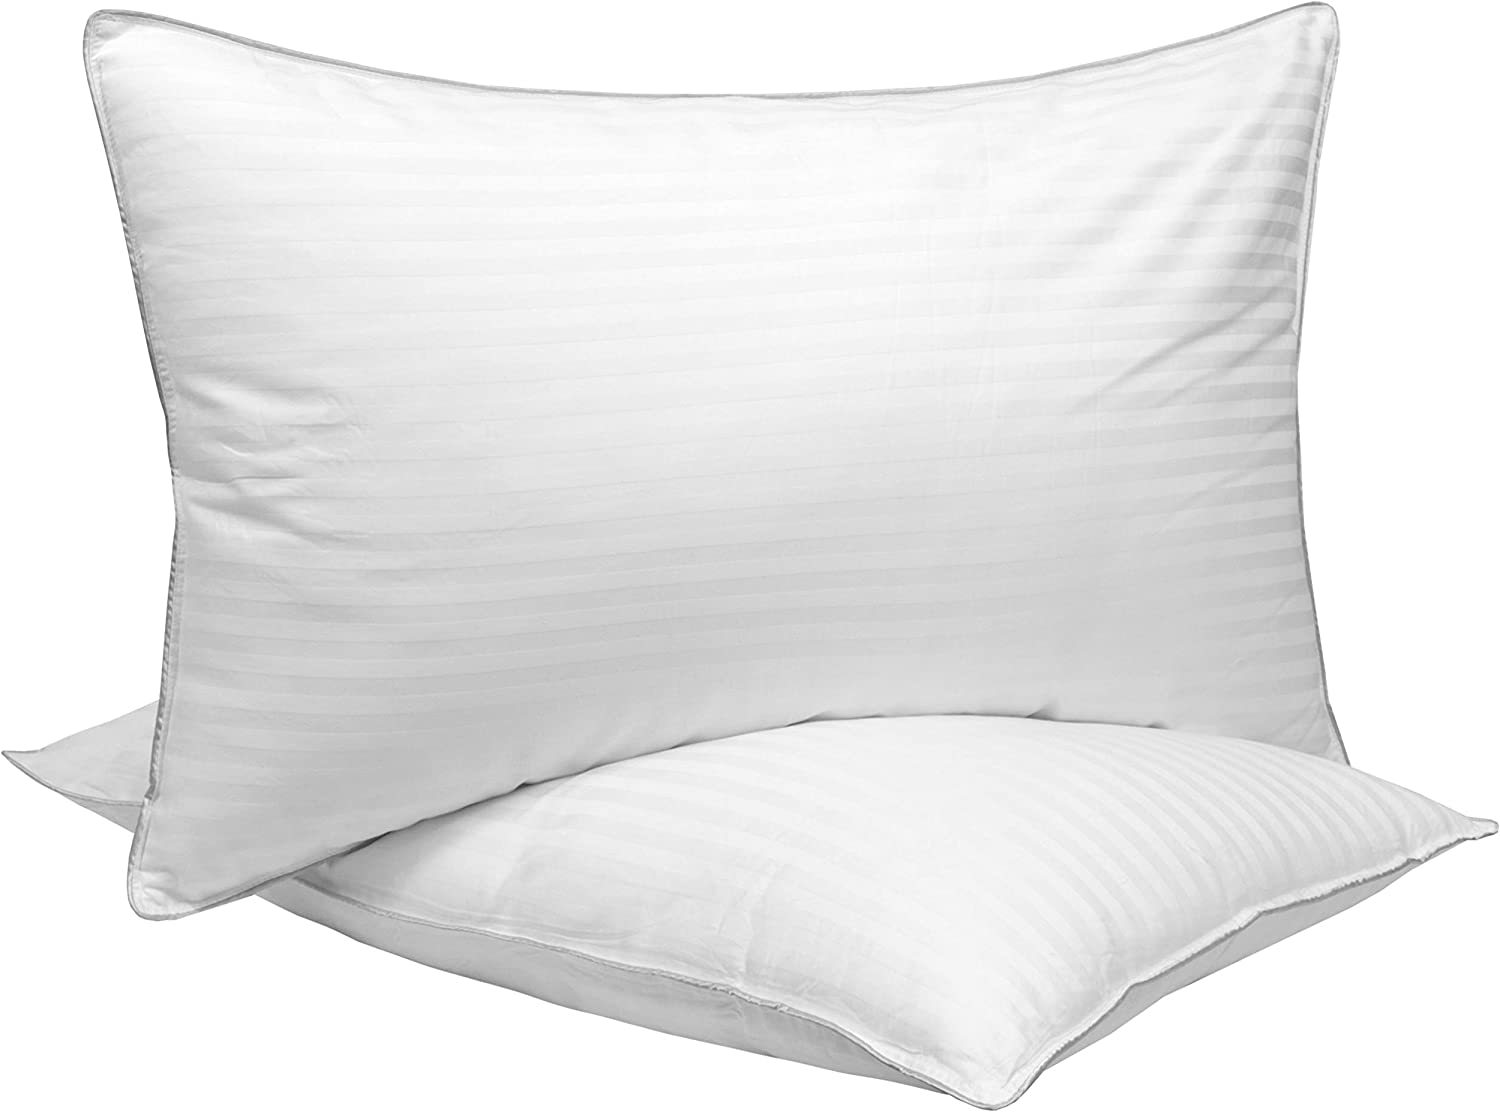 Sweet Home Collection Pillows for Sleeping 2 Pack Premium Down Alternative Fill with Cotton Cover Dobby Stripe Hotel Style Cushions with Silver Piping Edge, Queen, White